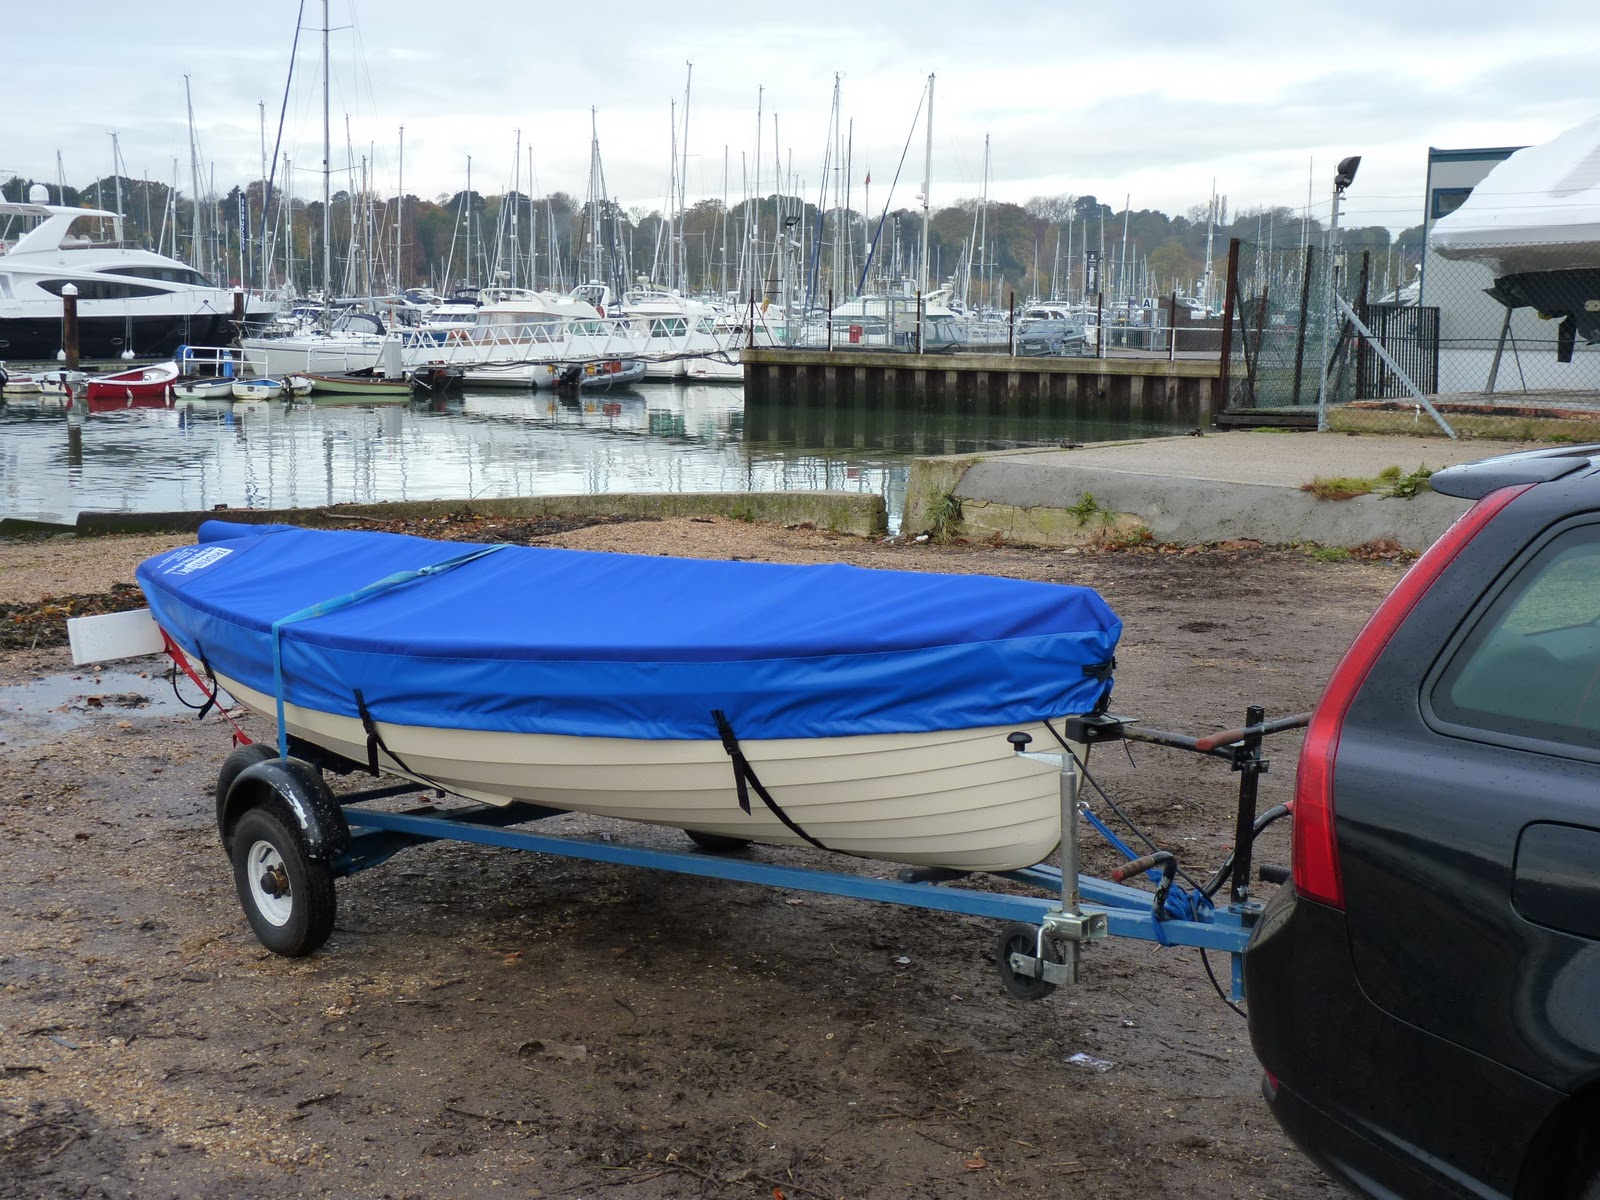 Port Na Storm 2010 Trailer Wiring Tridentuk Coot Covered In Water Craft